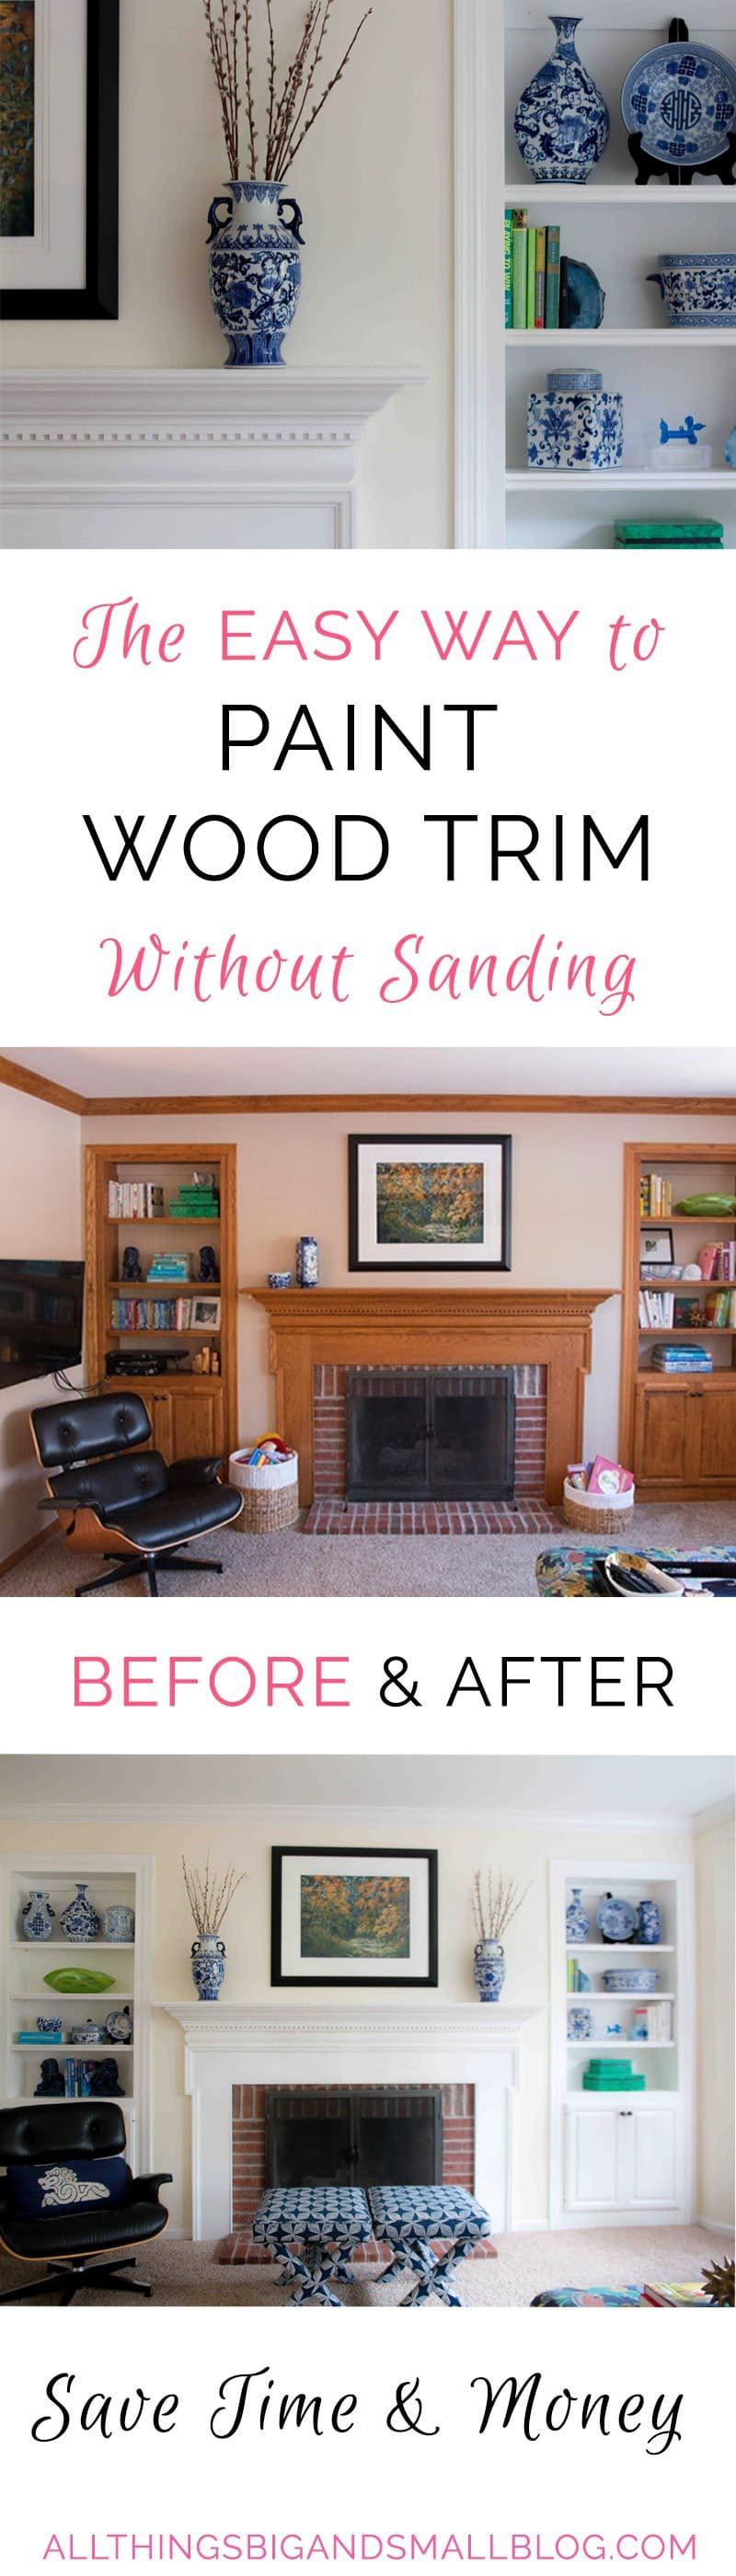 Painting Wood Trim Without Sanding The Ultimate Tutorial By Diy Decor Mom